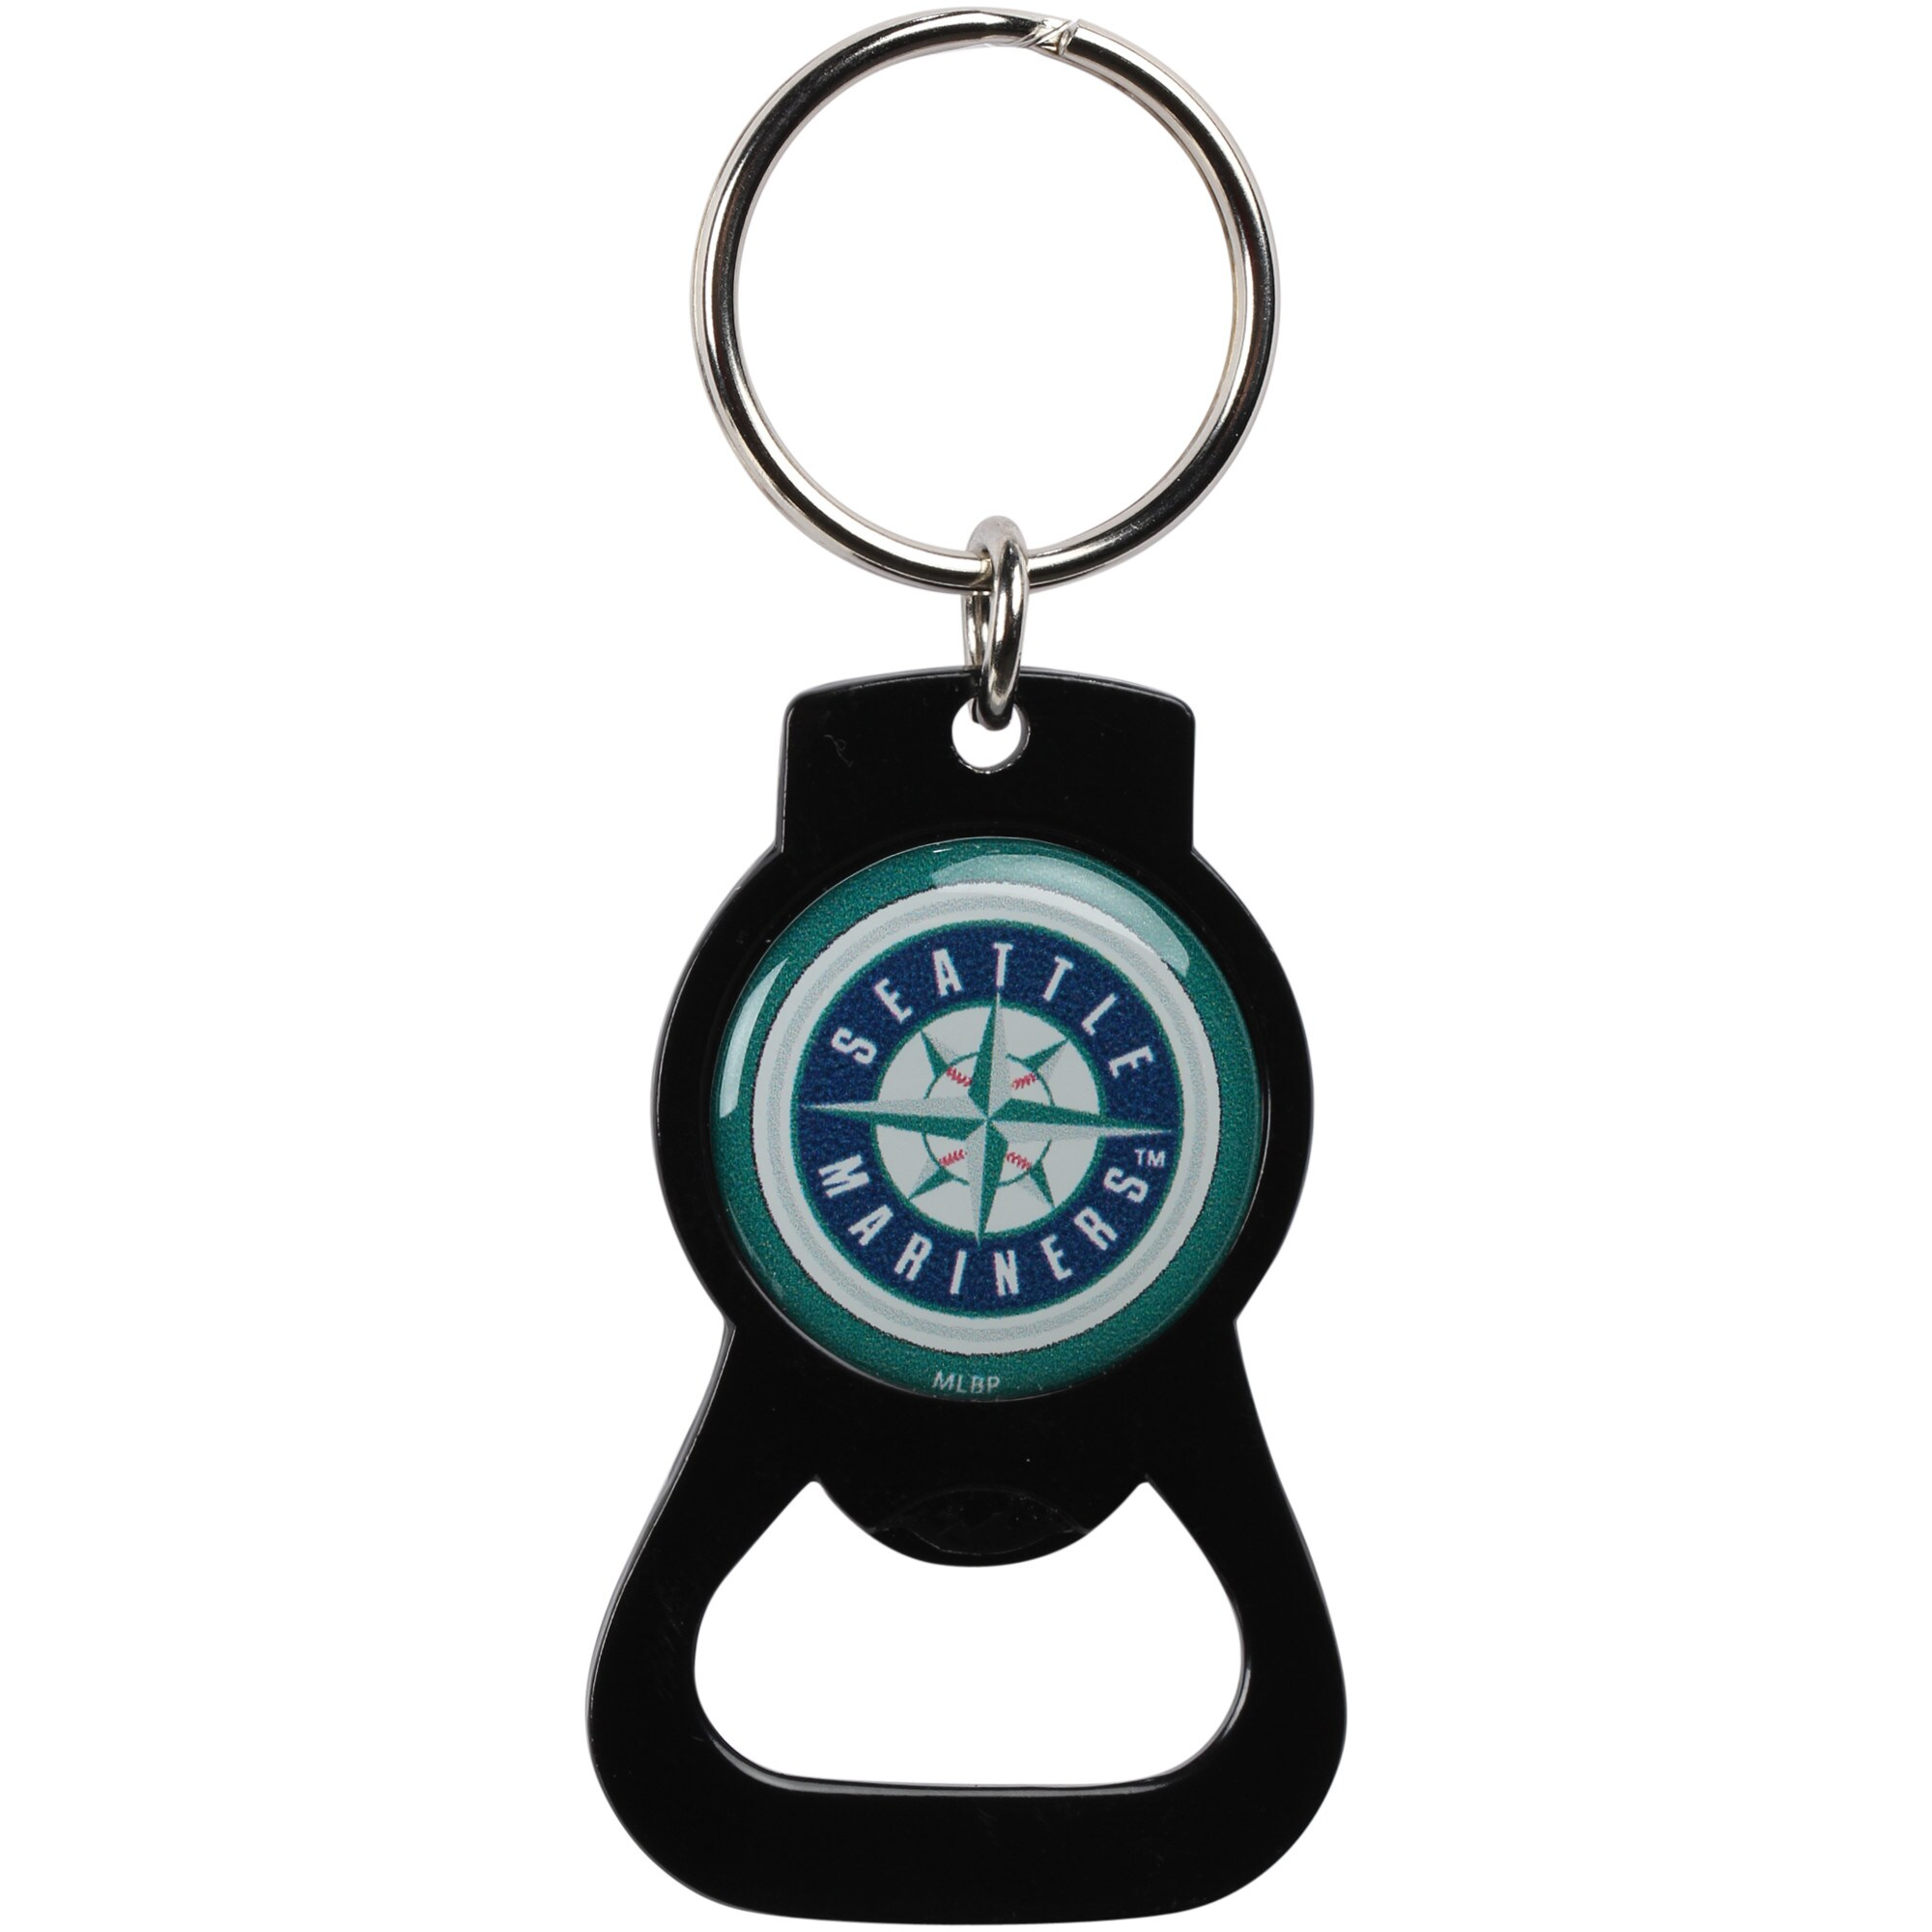 Seattle Mariners Bottle Opener Keychain - Black